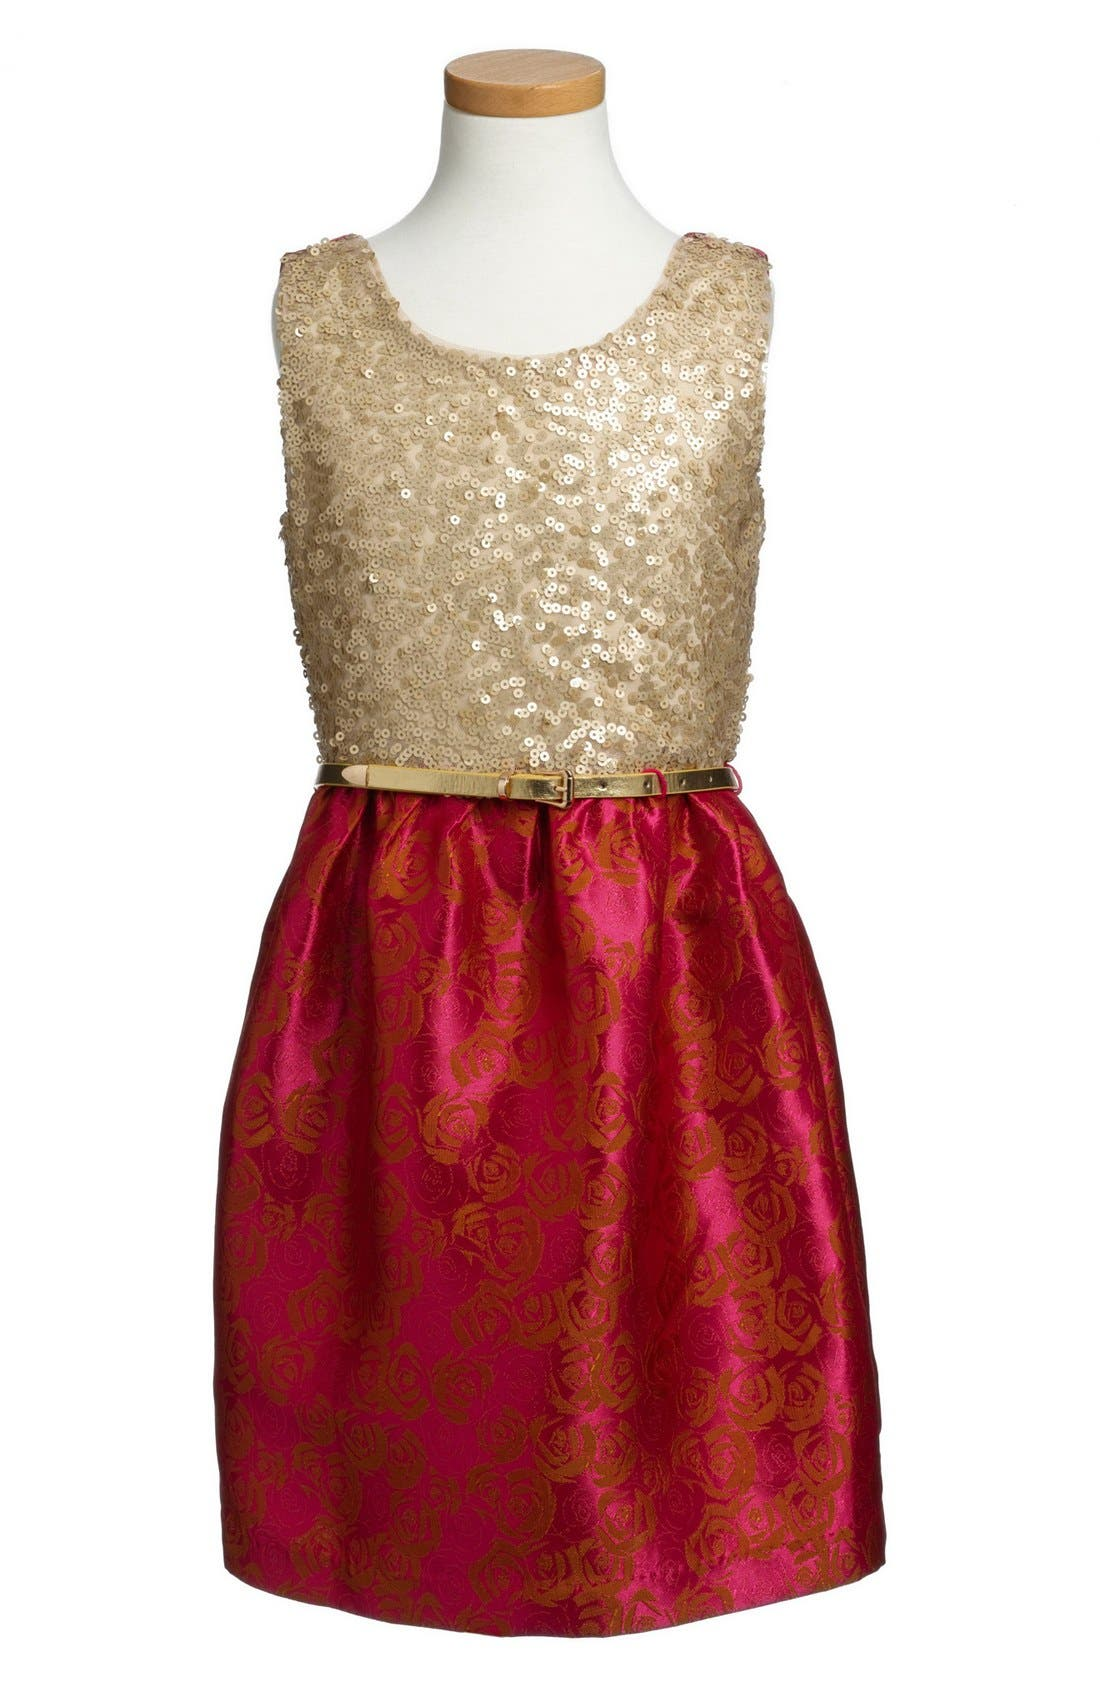 Main Image - BLUSH by Us Angels Sequin & Brocade Dress (Big Girls)